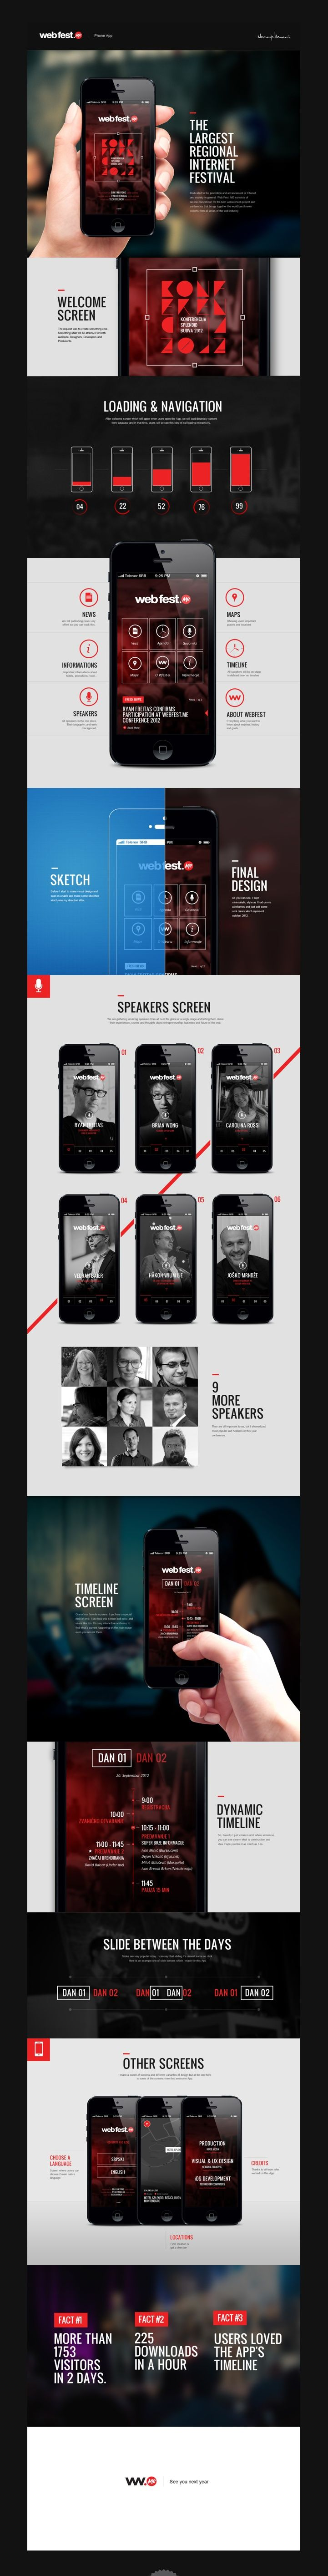 WebFest - iPhone App by Nemanja Ivanovic, via Behance *** Web Fest .ME Conference is not just the conference organized by the web people for the web people. It is the gathering of all those who want to experience inexhaustible energy behind running a startup, learn more about the recent developments in online marketing and web-based businesses and ultimately about using tech to take each and every aspect of their everyday lives to the next level.